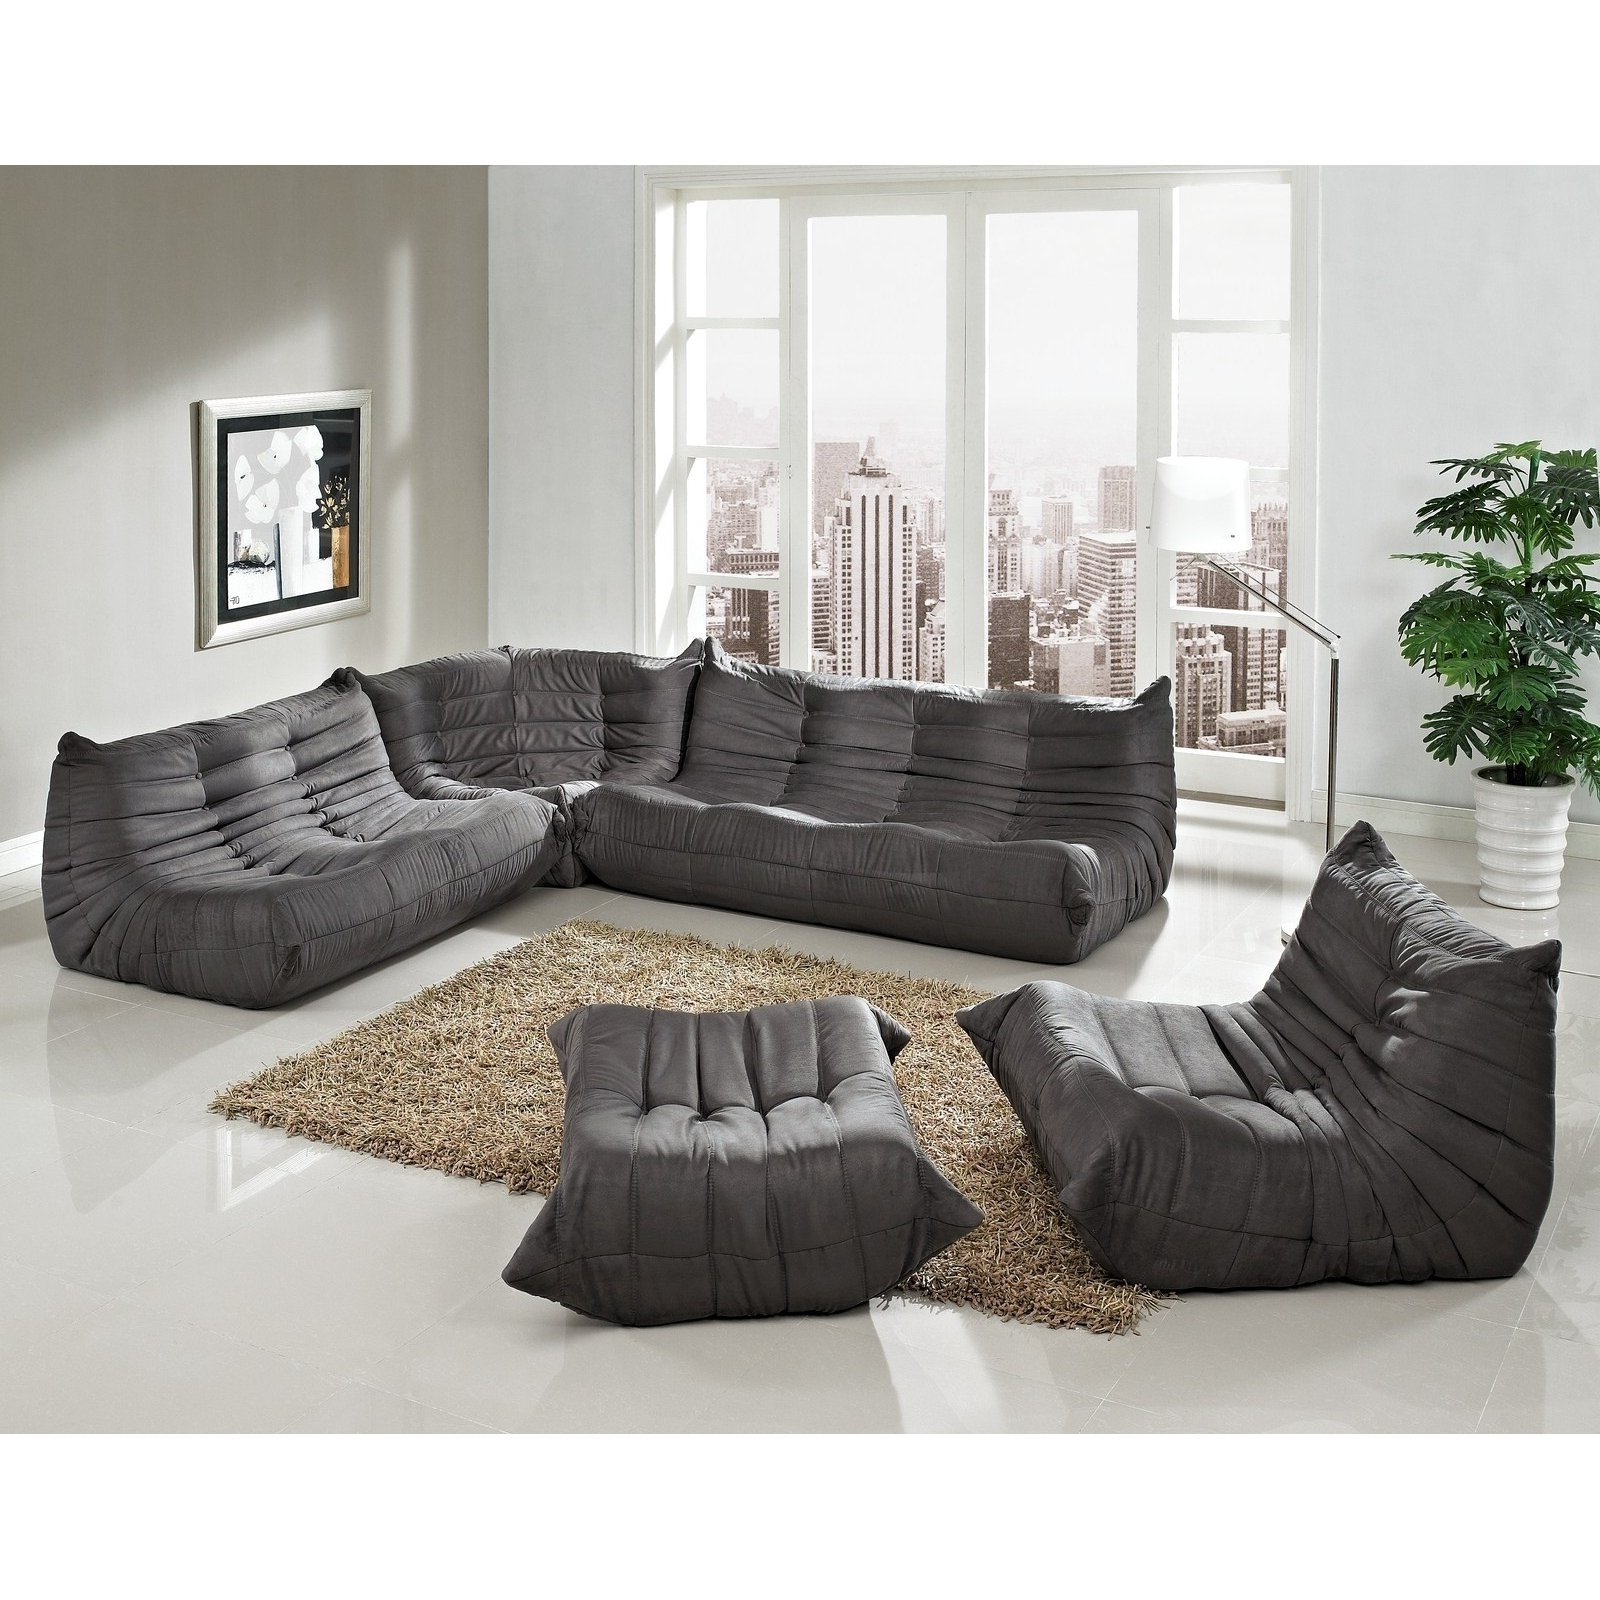 Low Sofas Regarding Most Recently Released Beautiful Low Profile Sectional Sofa 40 On Sofas And Couches Ideas (View 6 of 20)